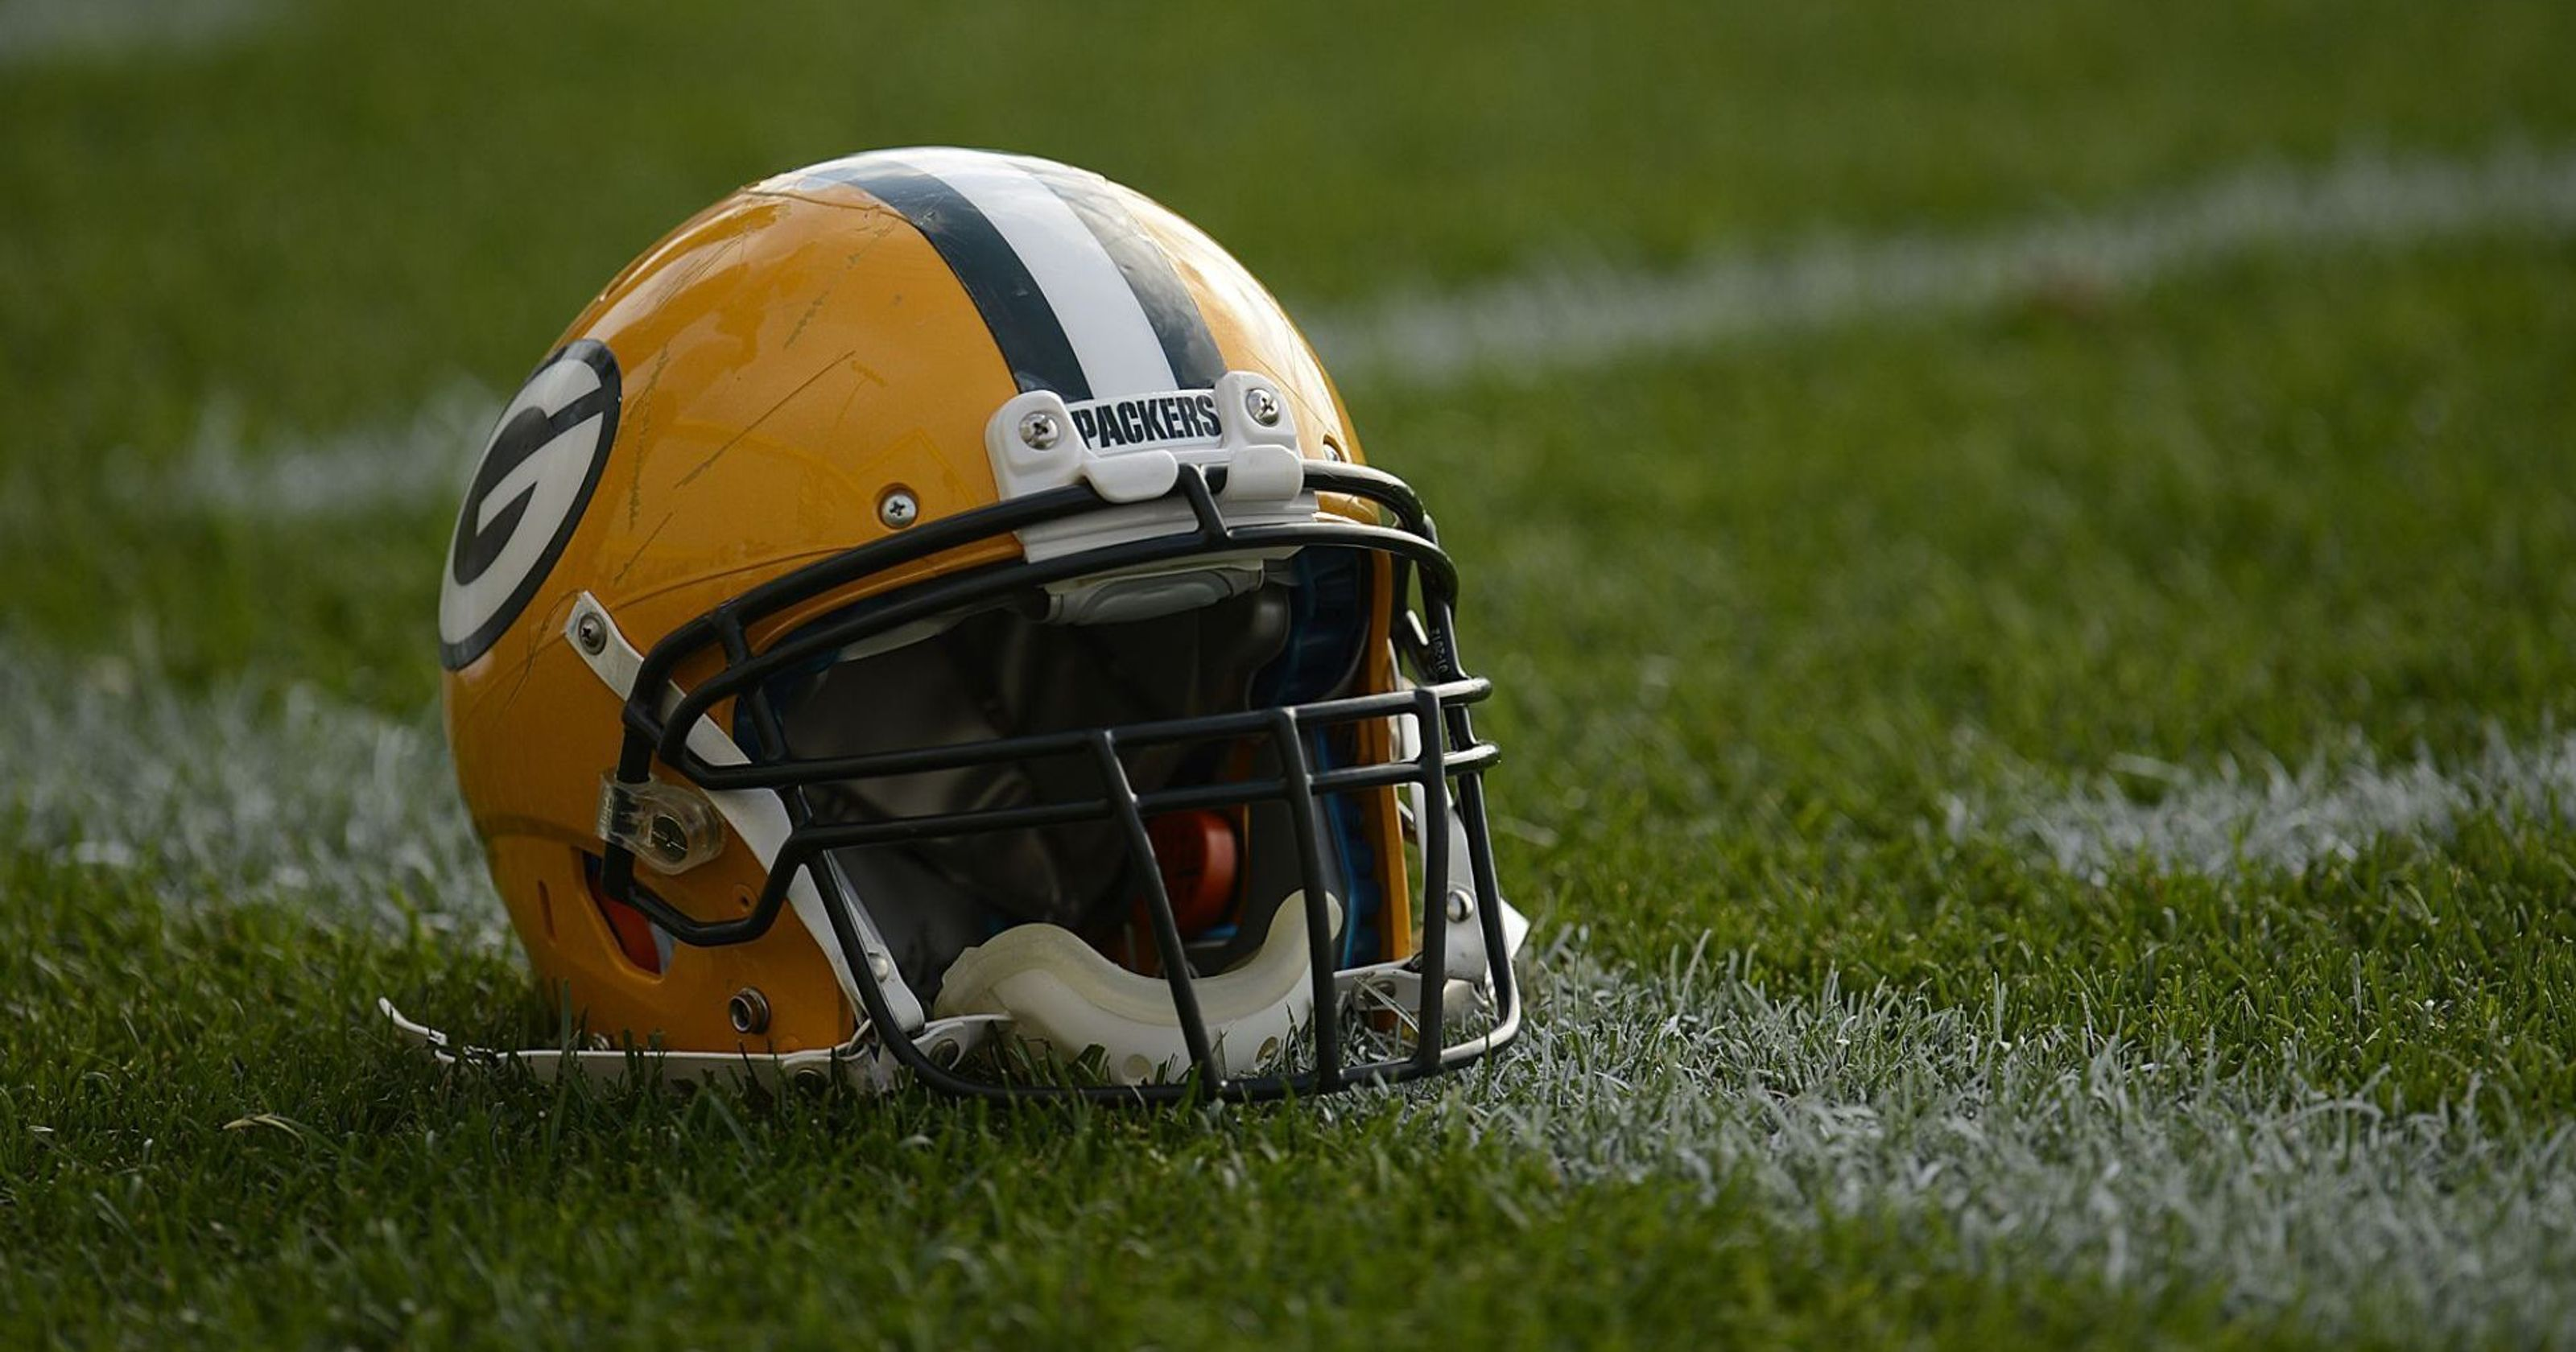 Packers continue to look at ways to strengthen roster